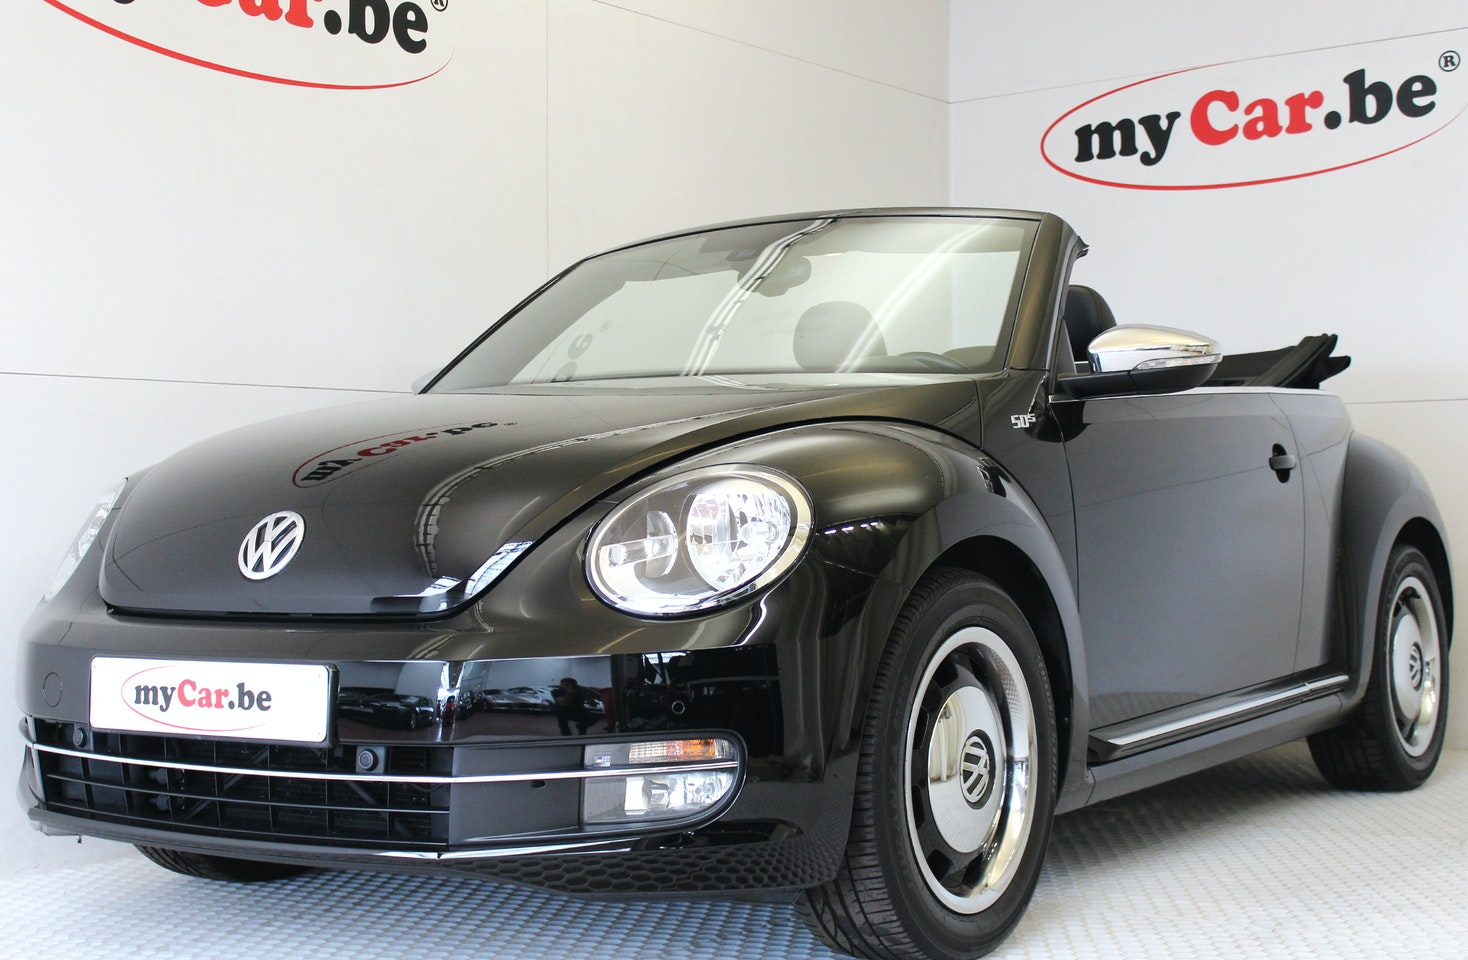 volkswagen new beetle cabriolet 50s edition le sp cialiste dans presque. Black Bedroom Furniture Sets. Home Design Ideas